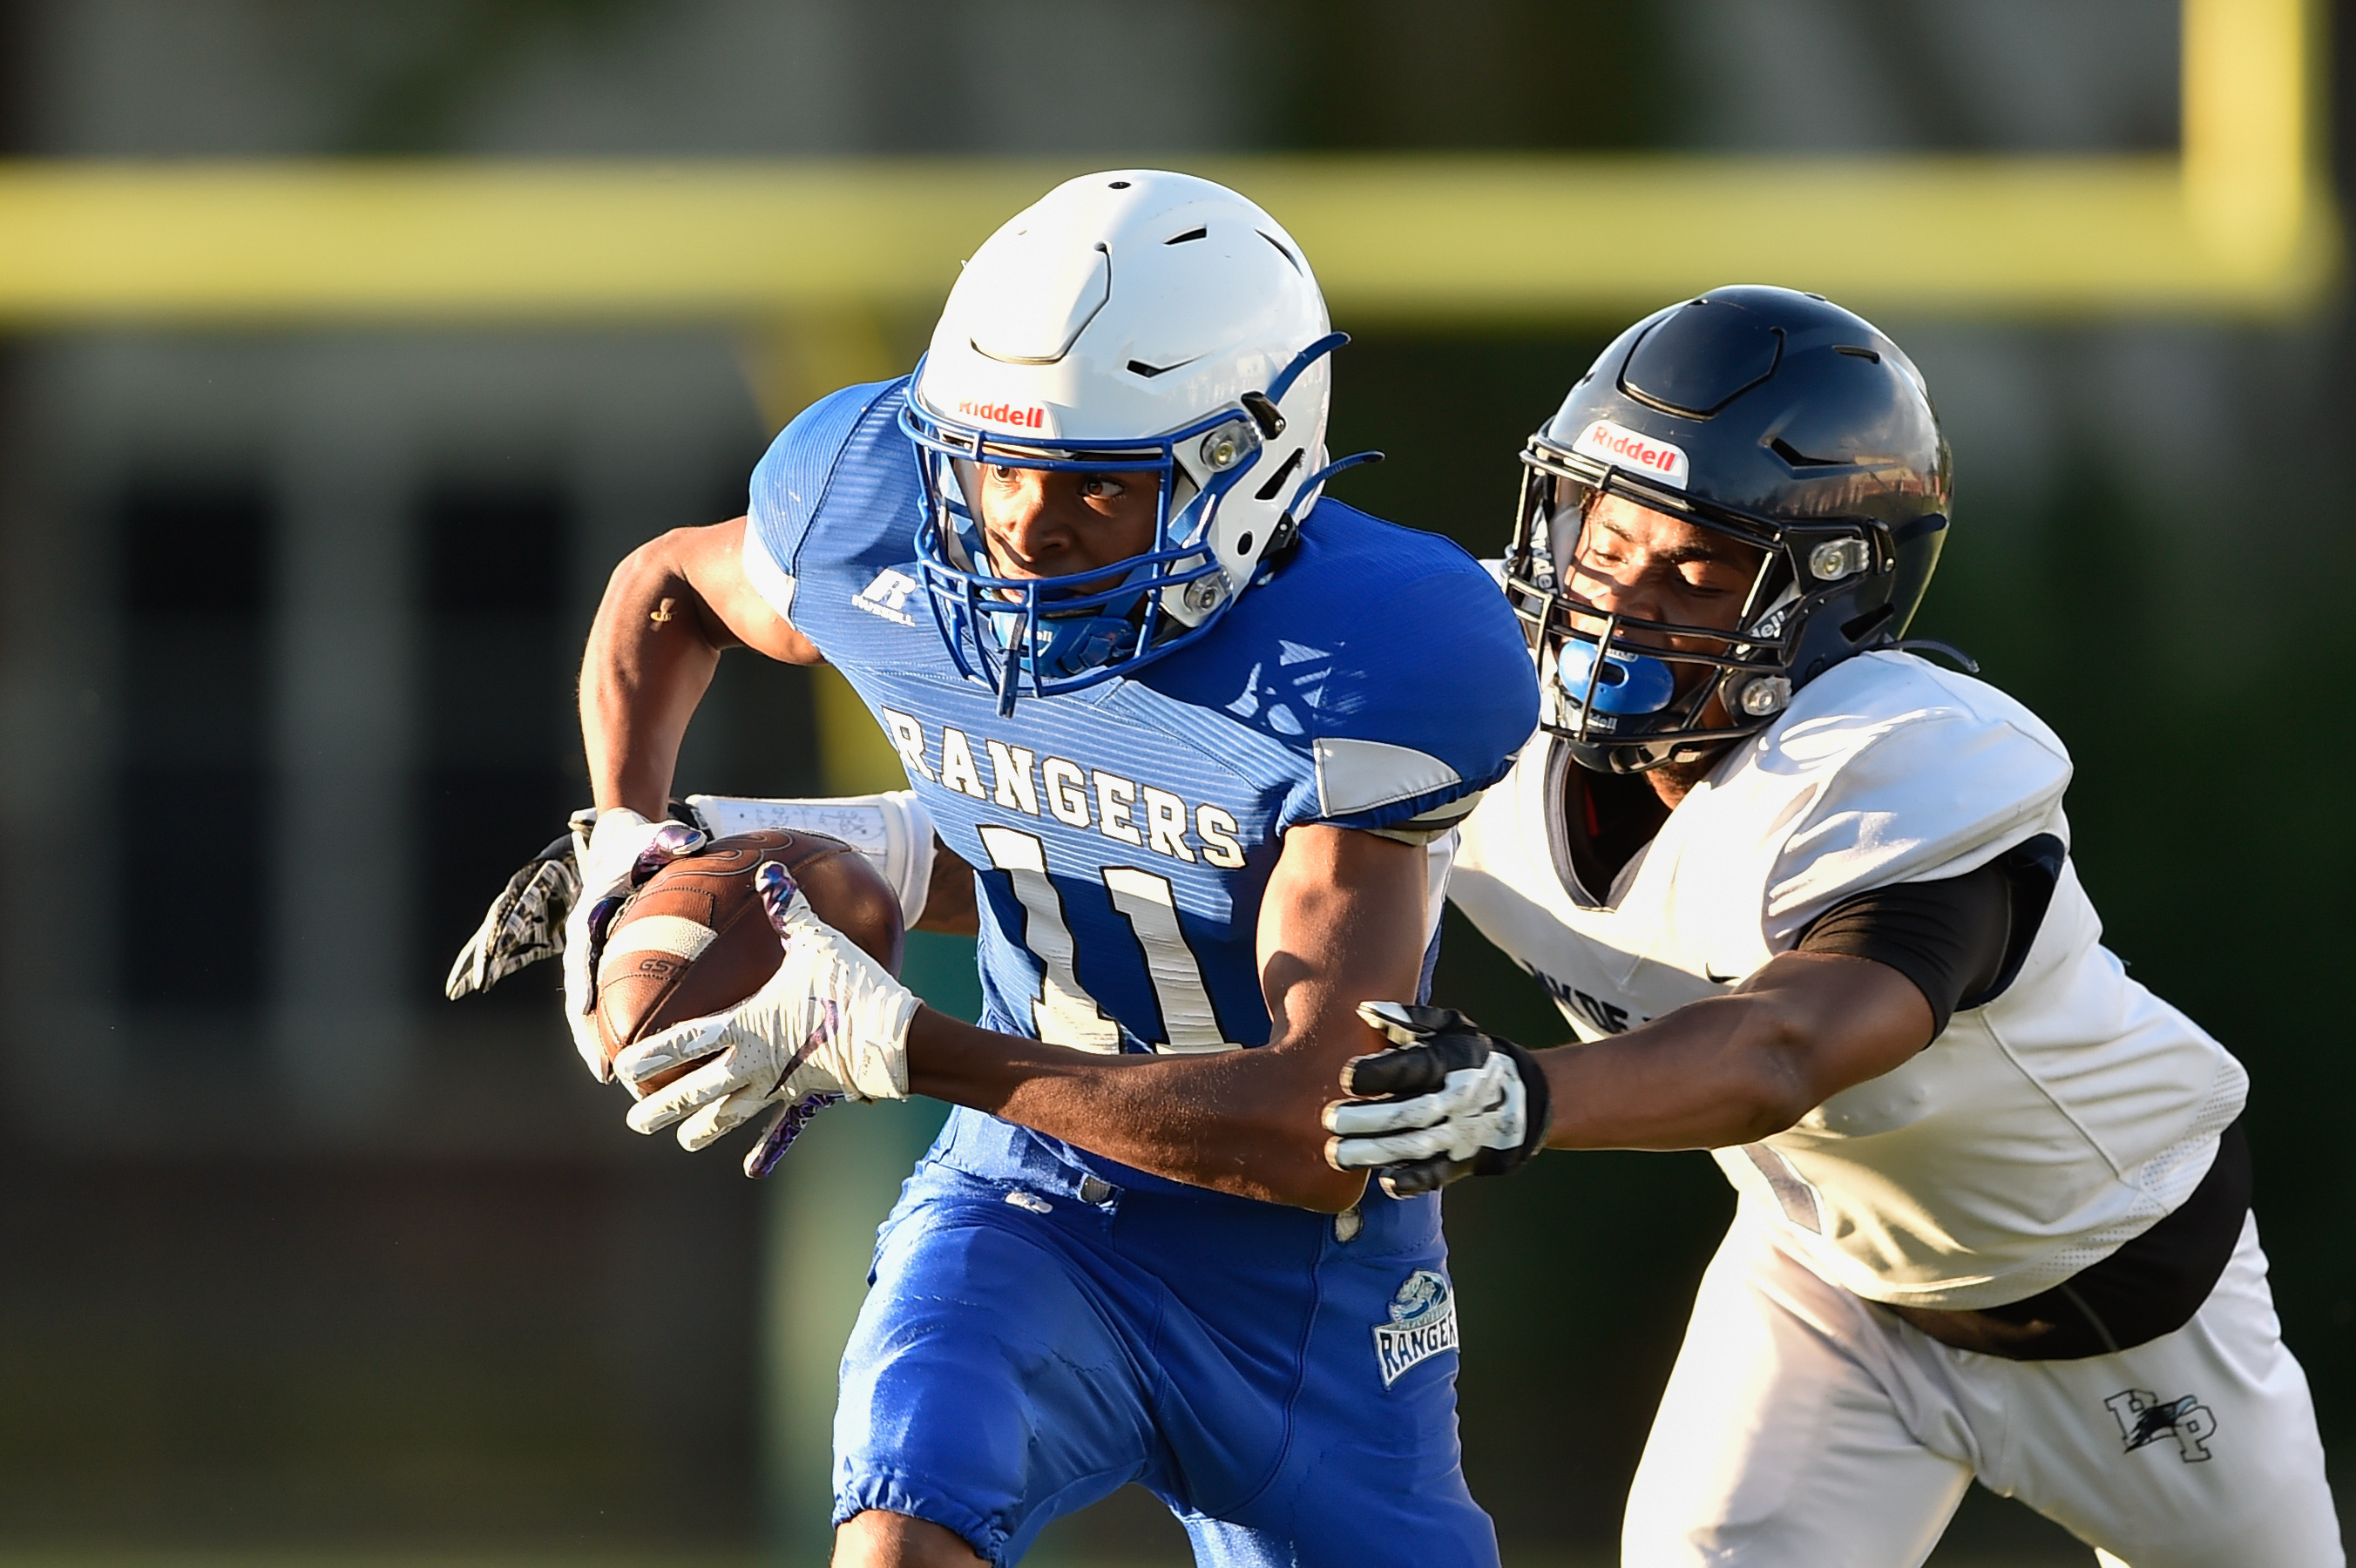 Mather's Terence Young (11) runs the ball after intercepting a pass intended for Hyde Park's Jeremiah Smith (7).